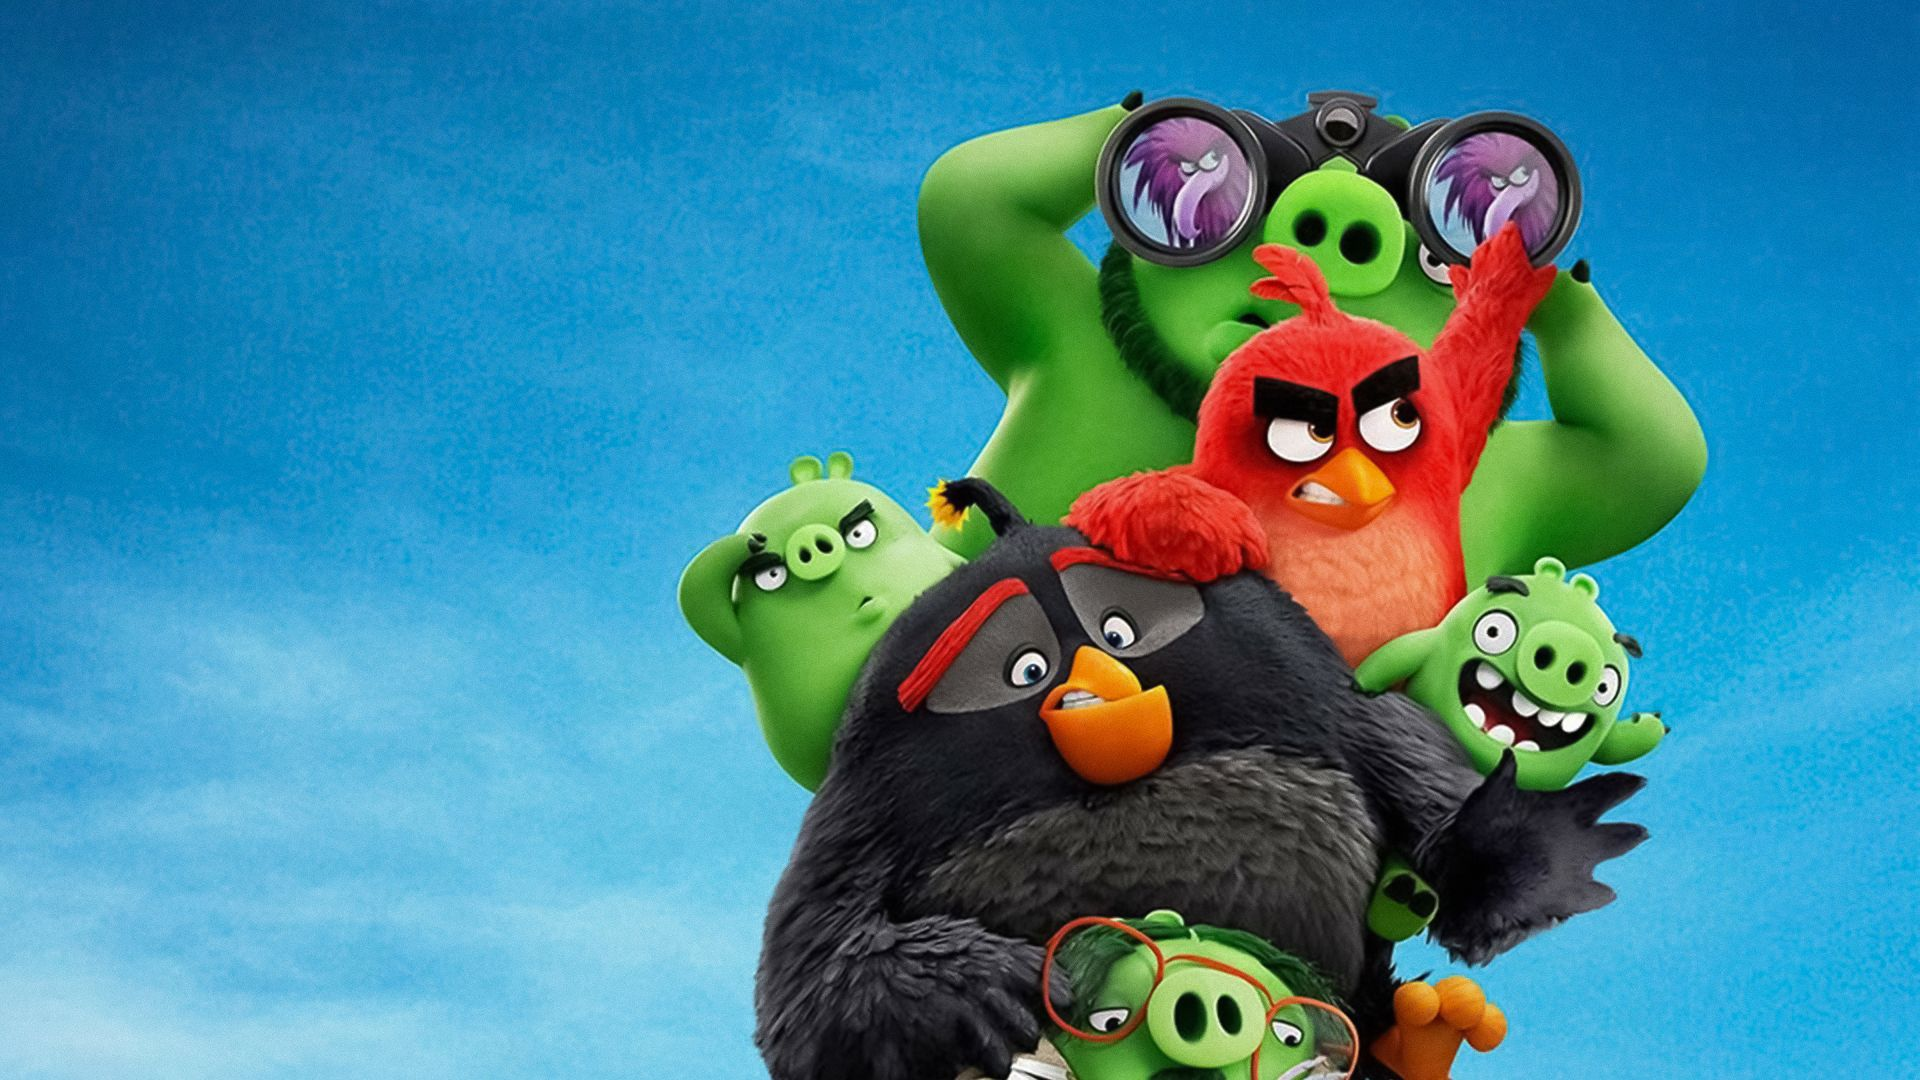 The Angry Birds Movie 2, poster, 4K (horizontal)